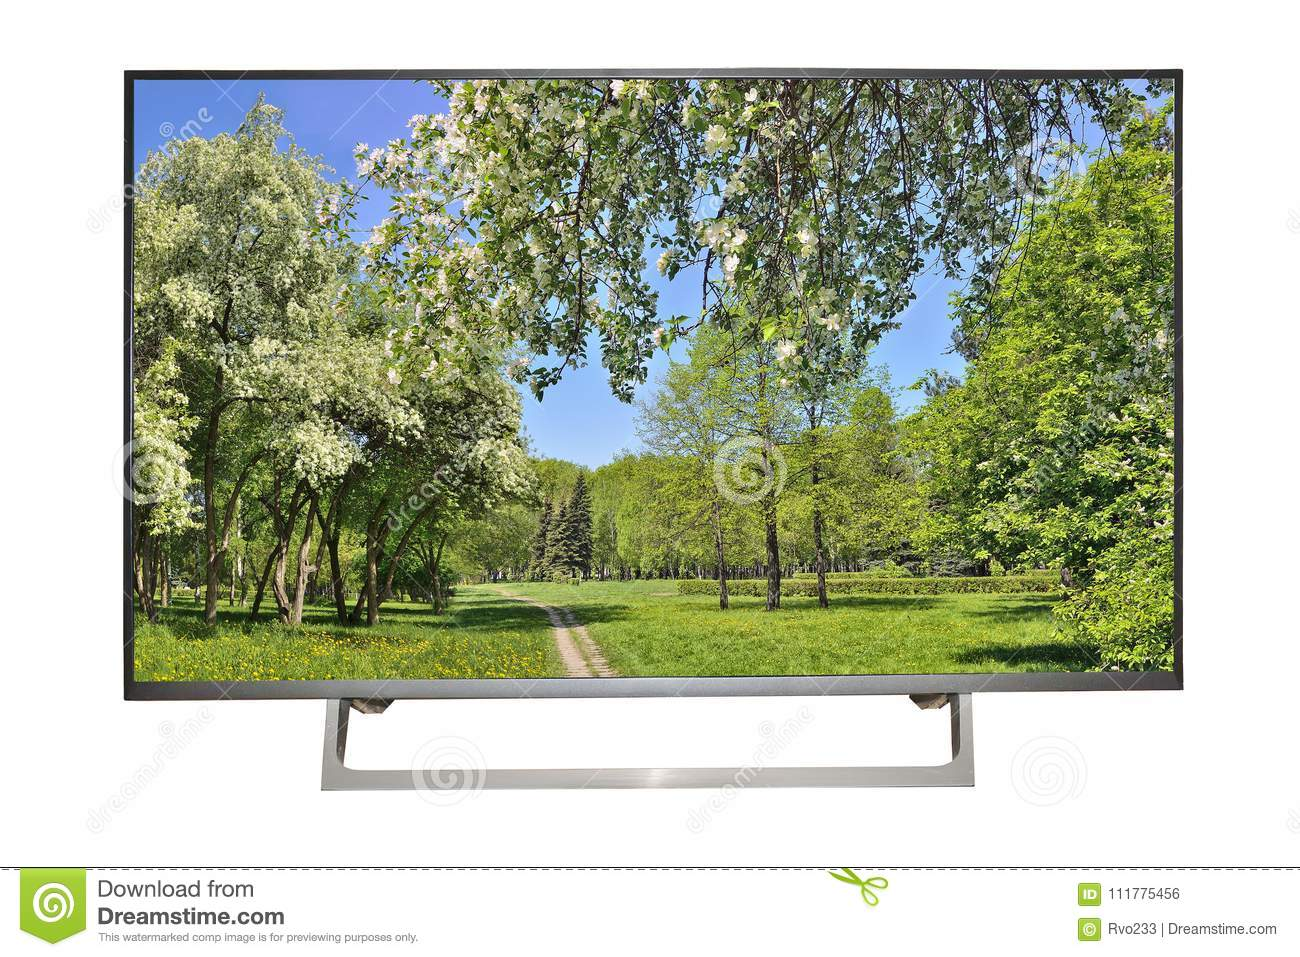 Modern high-definition TV or monitor with spring landscape on sc